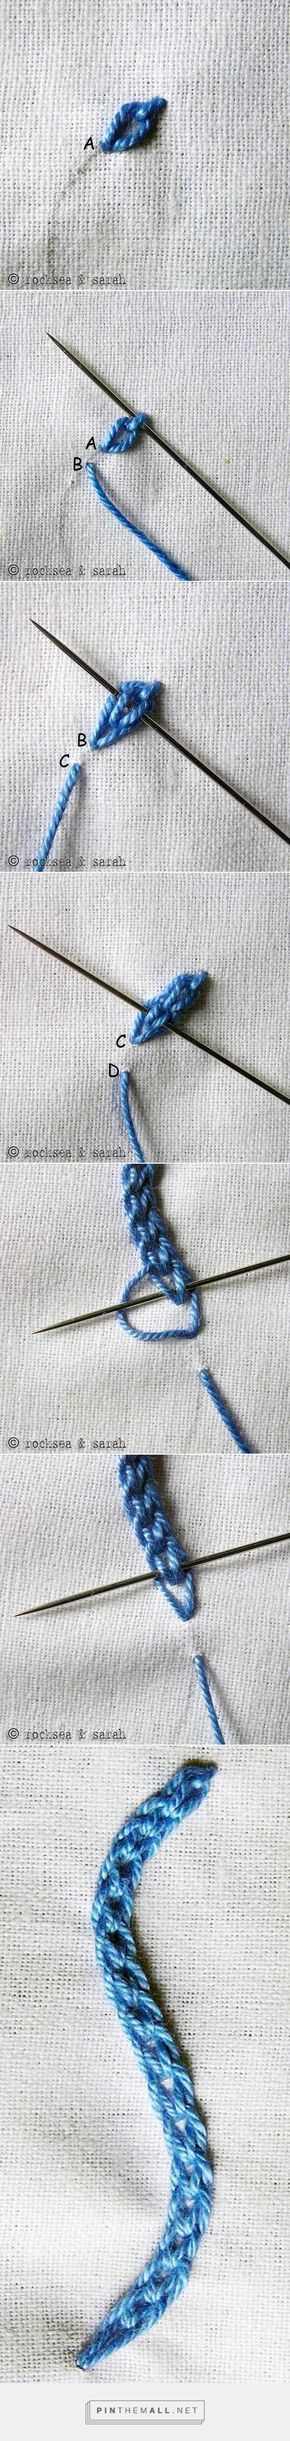 braided chain stitch » Sarah's Hand Embroidery Tutorials - created via https://pinthemall.net